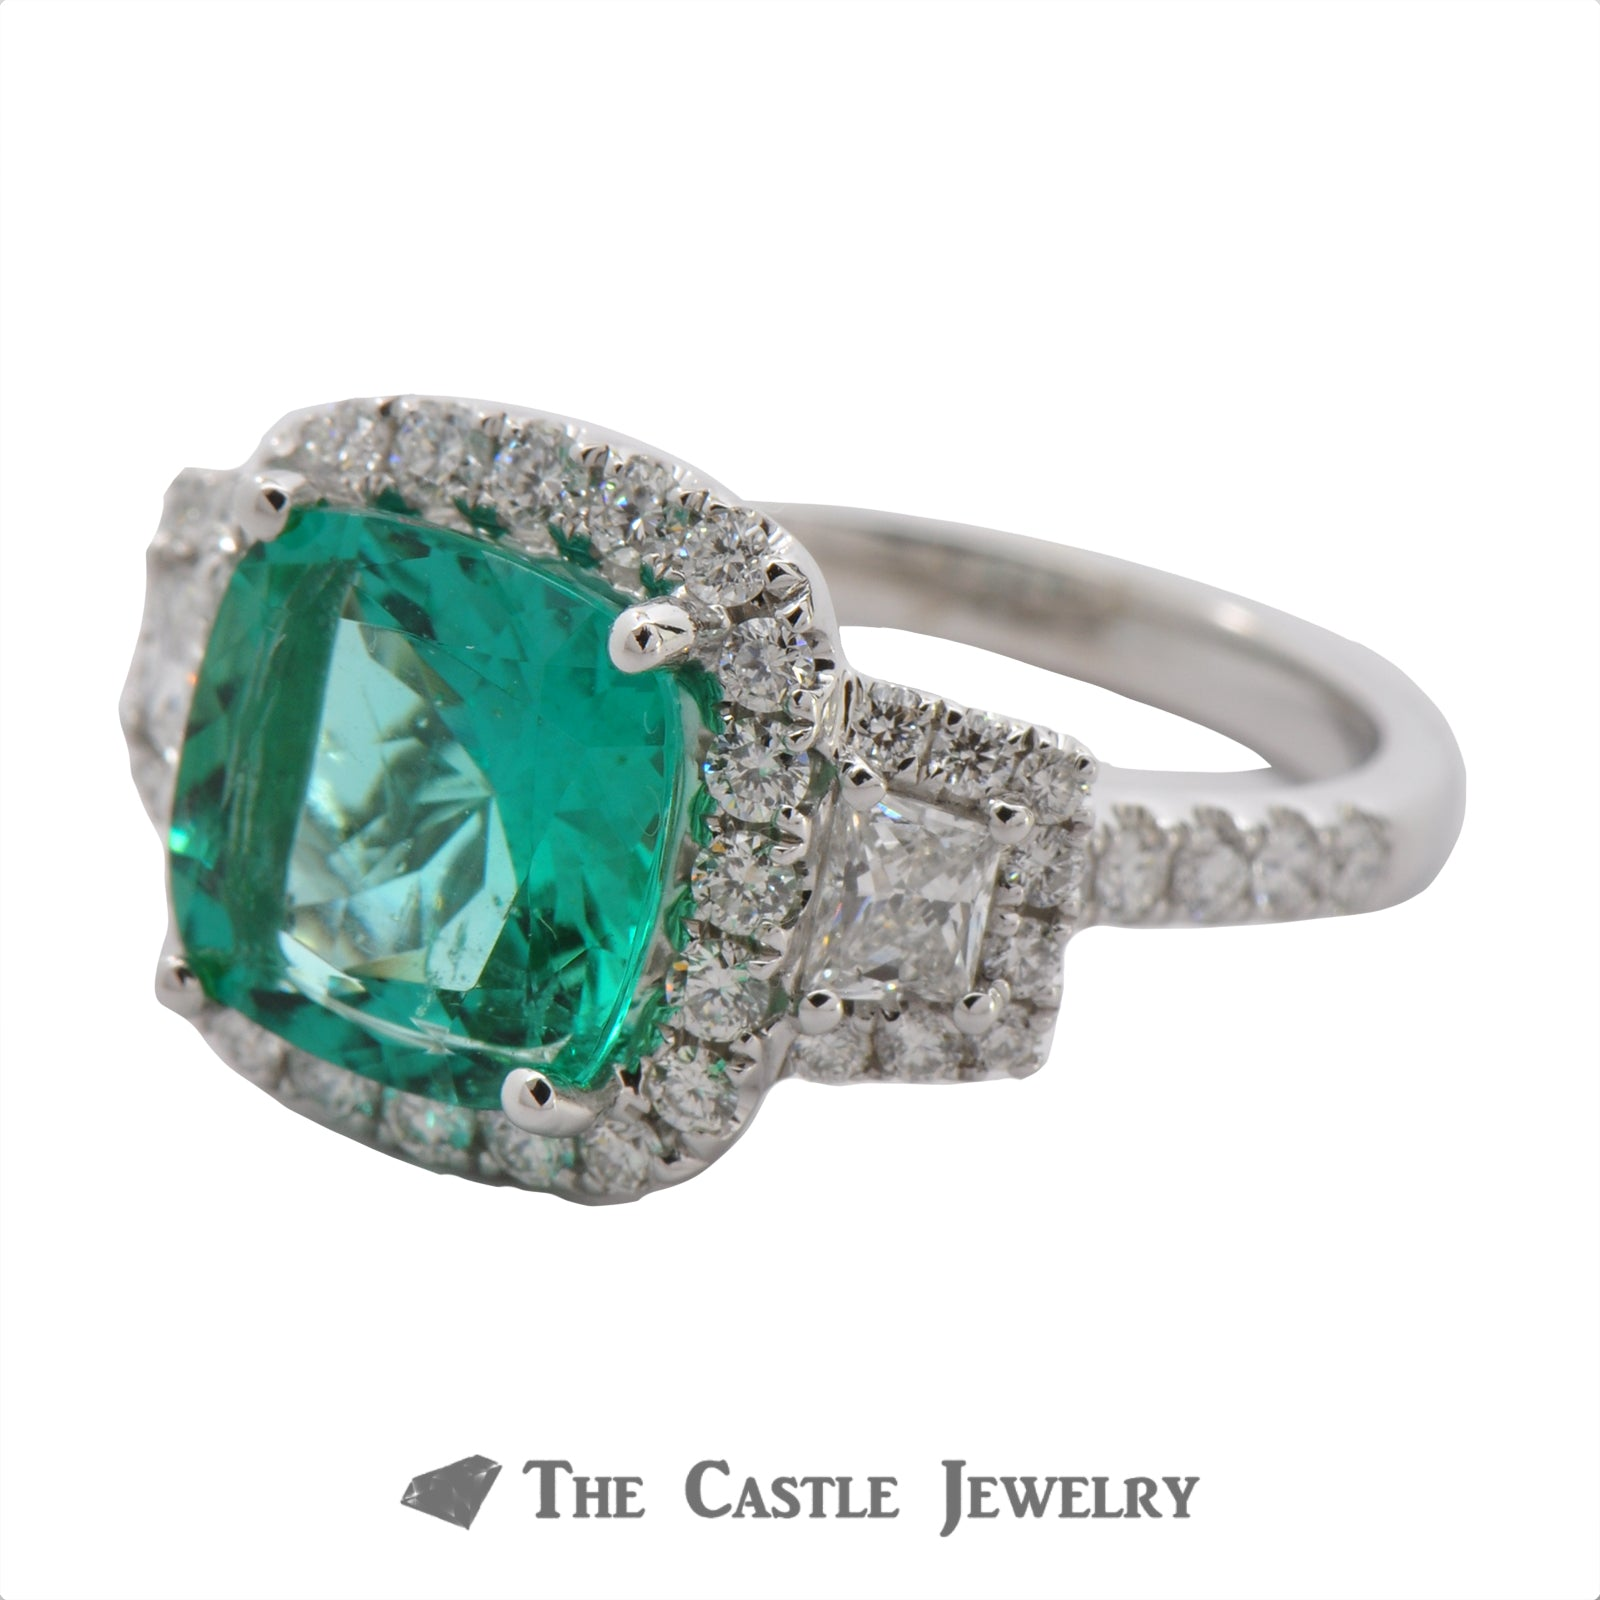 Cushion Cut Emerald Ring in a 18K White Gold Diamond Mounting-2